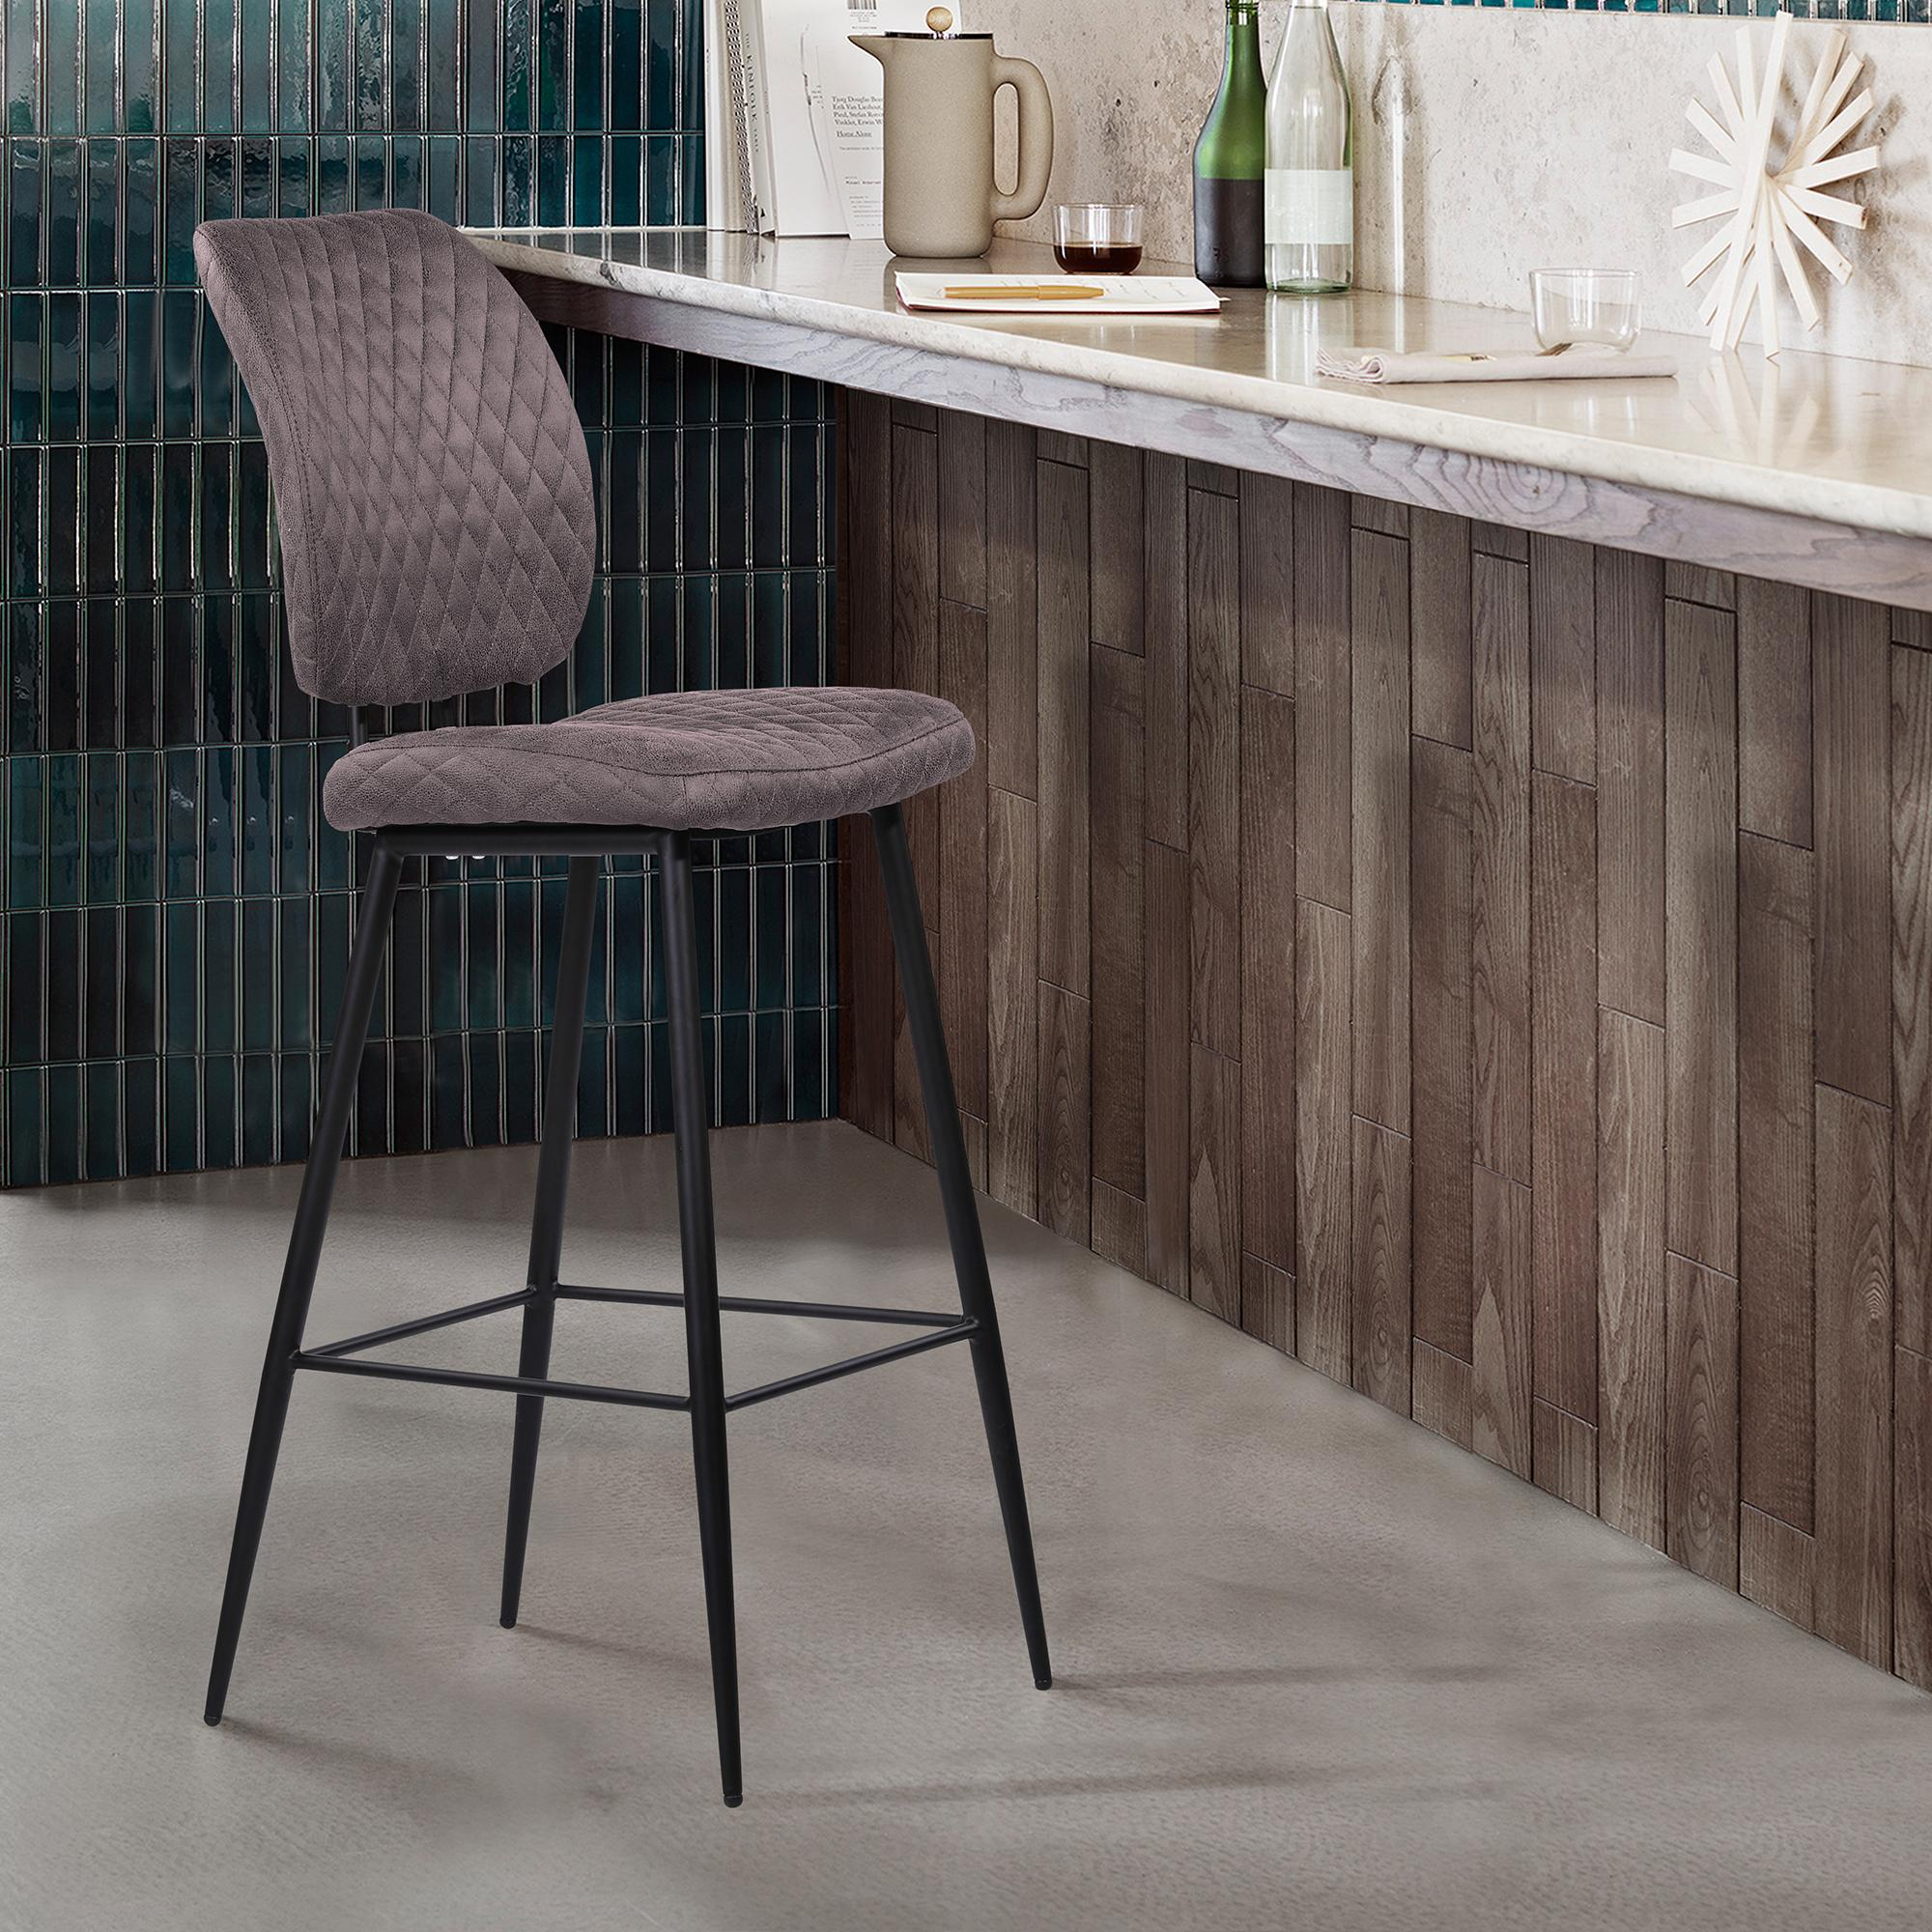 Armen Living Buckley Contemporary 30' Bar Height Barstool in Matte Black Powder Coated Finish and Grey Fabric